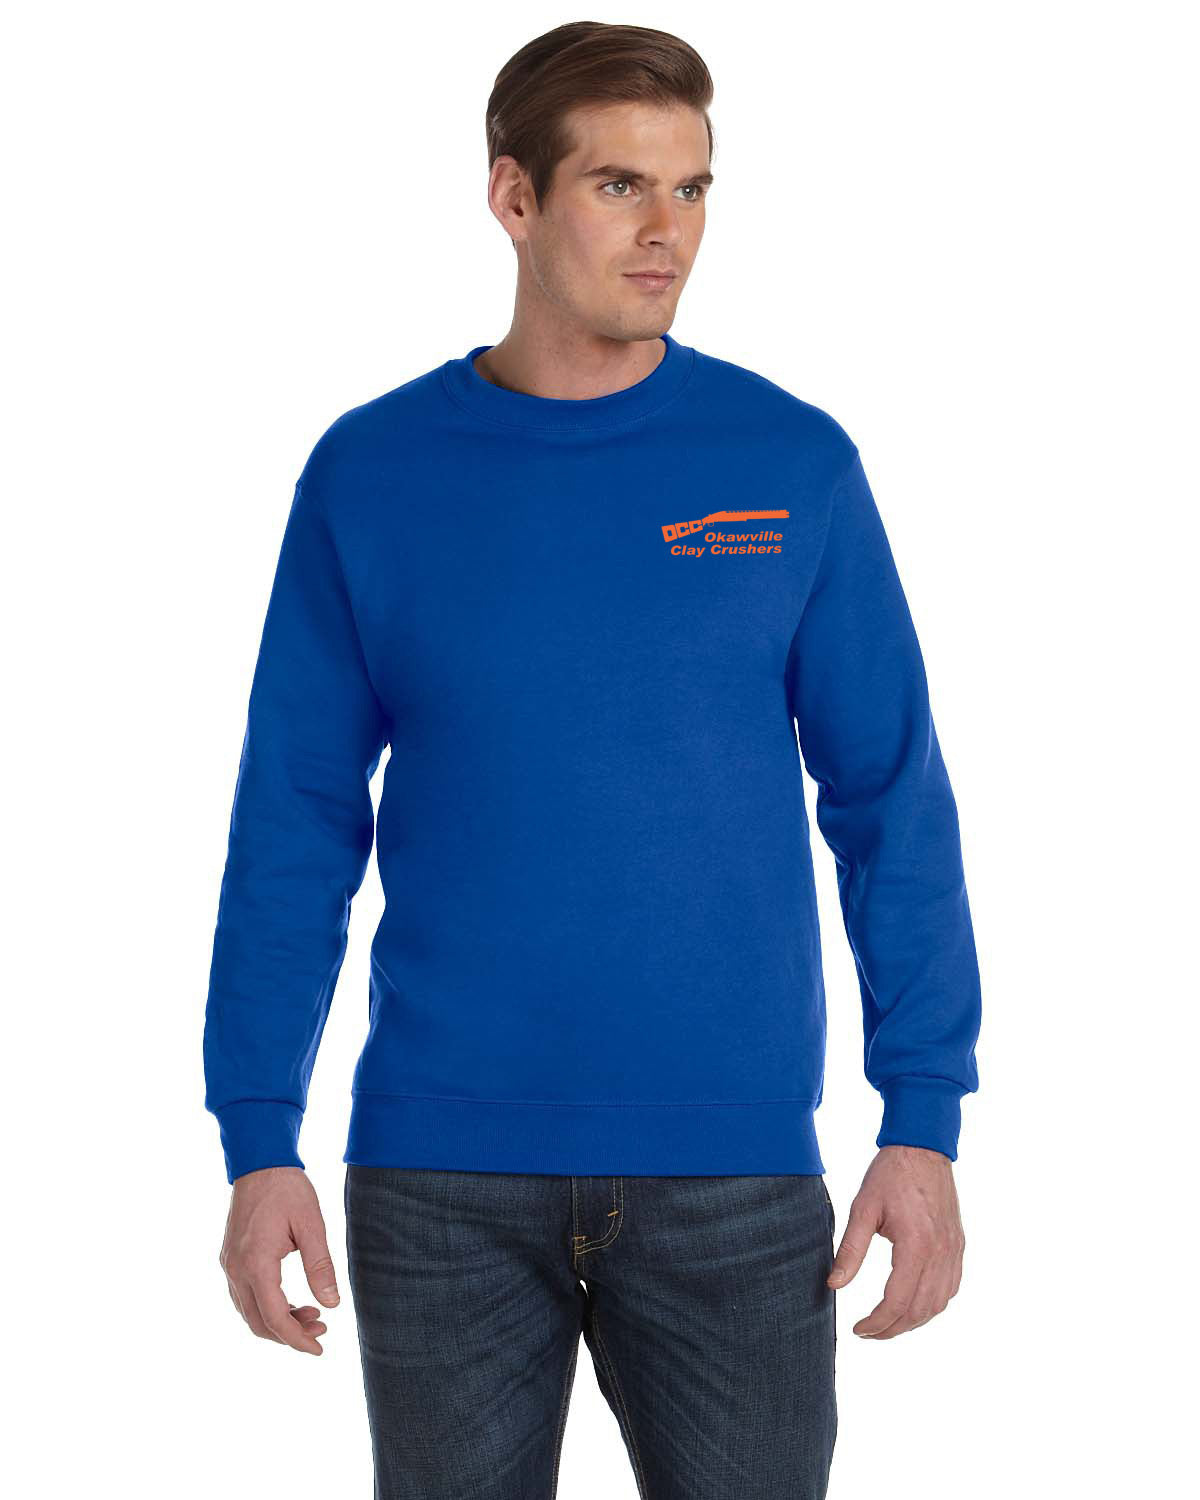 Okaville Clay Crushers Gildan DryBlend® 9.3 oz., 50/50 Fleece Crew